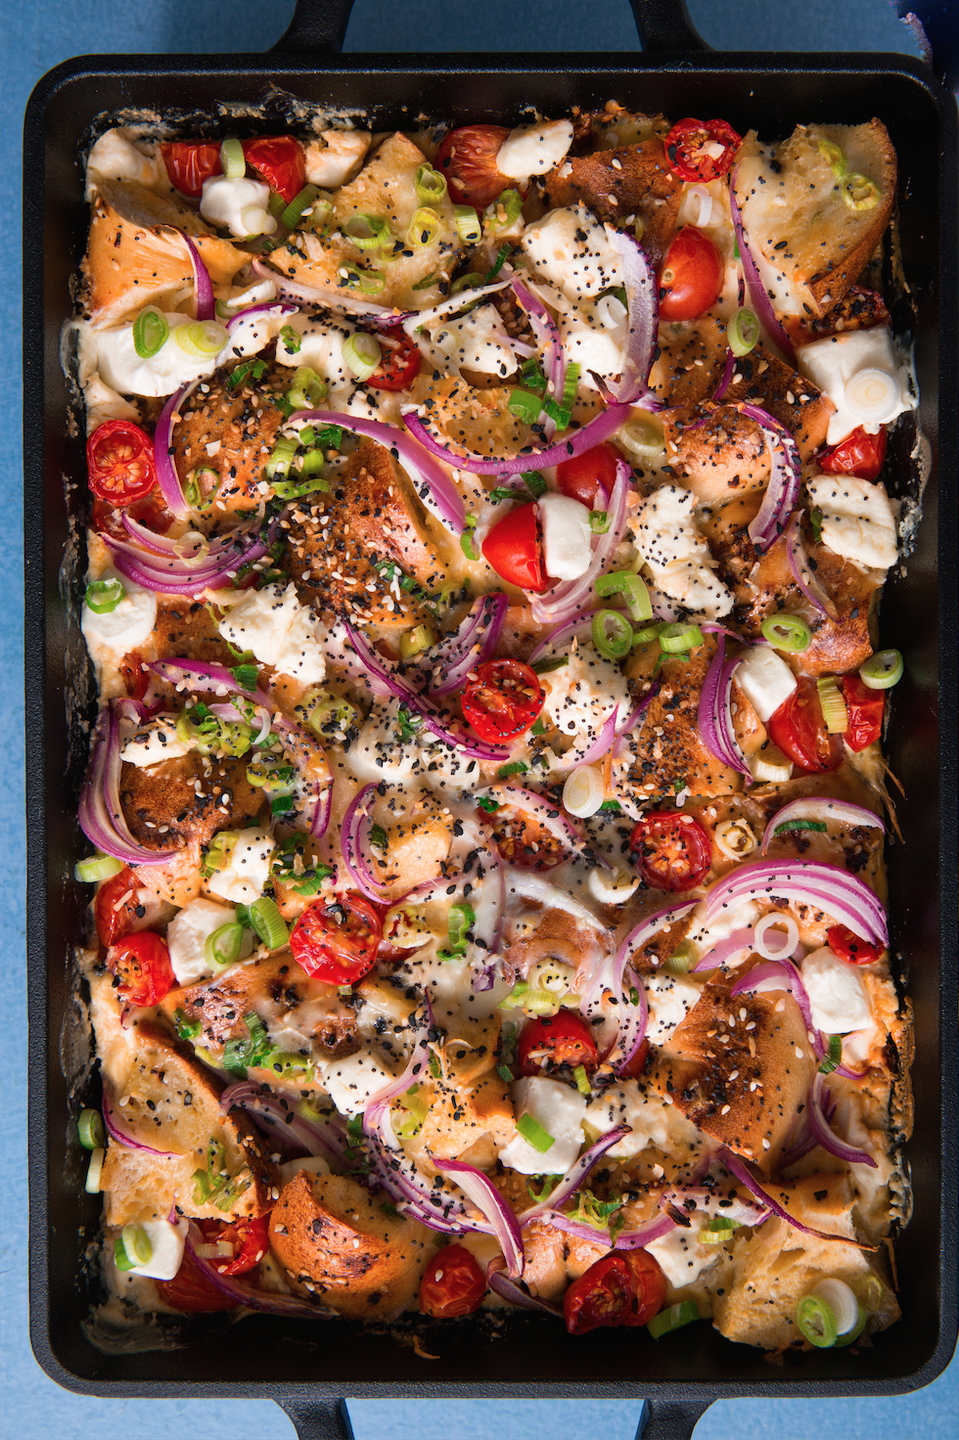 """<p>Everything you want it to be and more.</p><p>Get the recipe from <a href=""""https://www.delish.com/cooking/recipe-ideas/recipes/a57263/everything-bagel-casserole-recipe/"""" rel=""""nofollow noopener"""" target=""""_blank"""" data-ylk=""""slk:Delish"""" class=""""link rapid-noclick-resp"""">Delish</a>. </p>"""